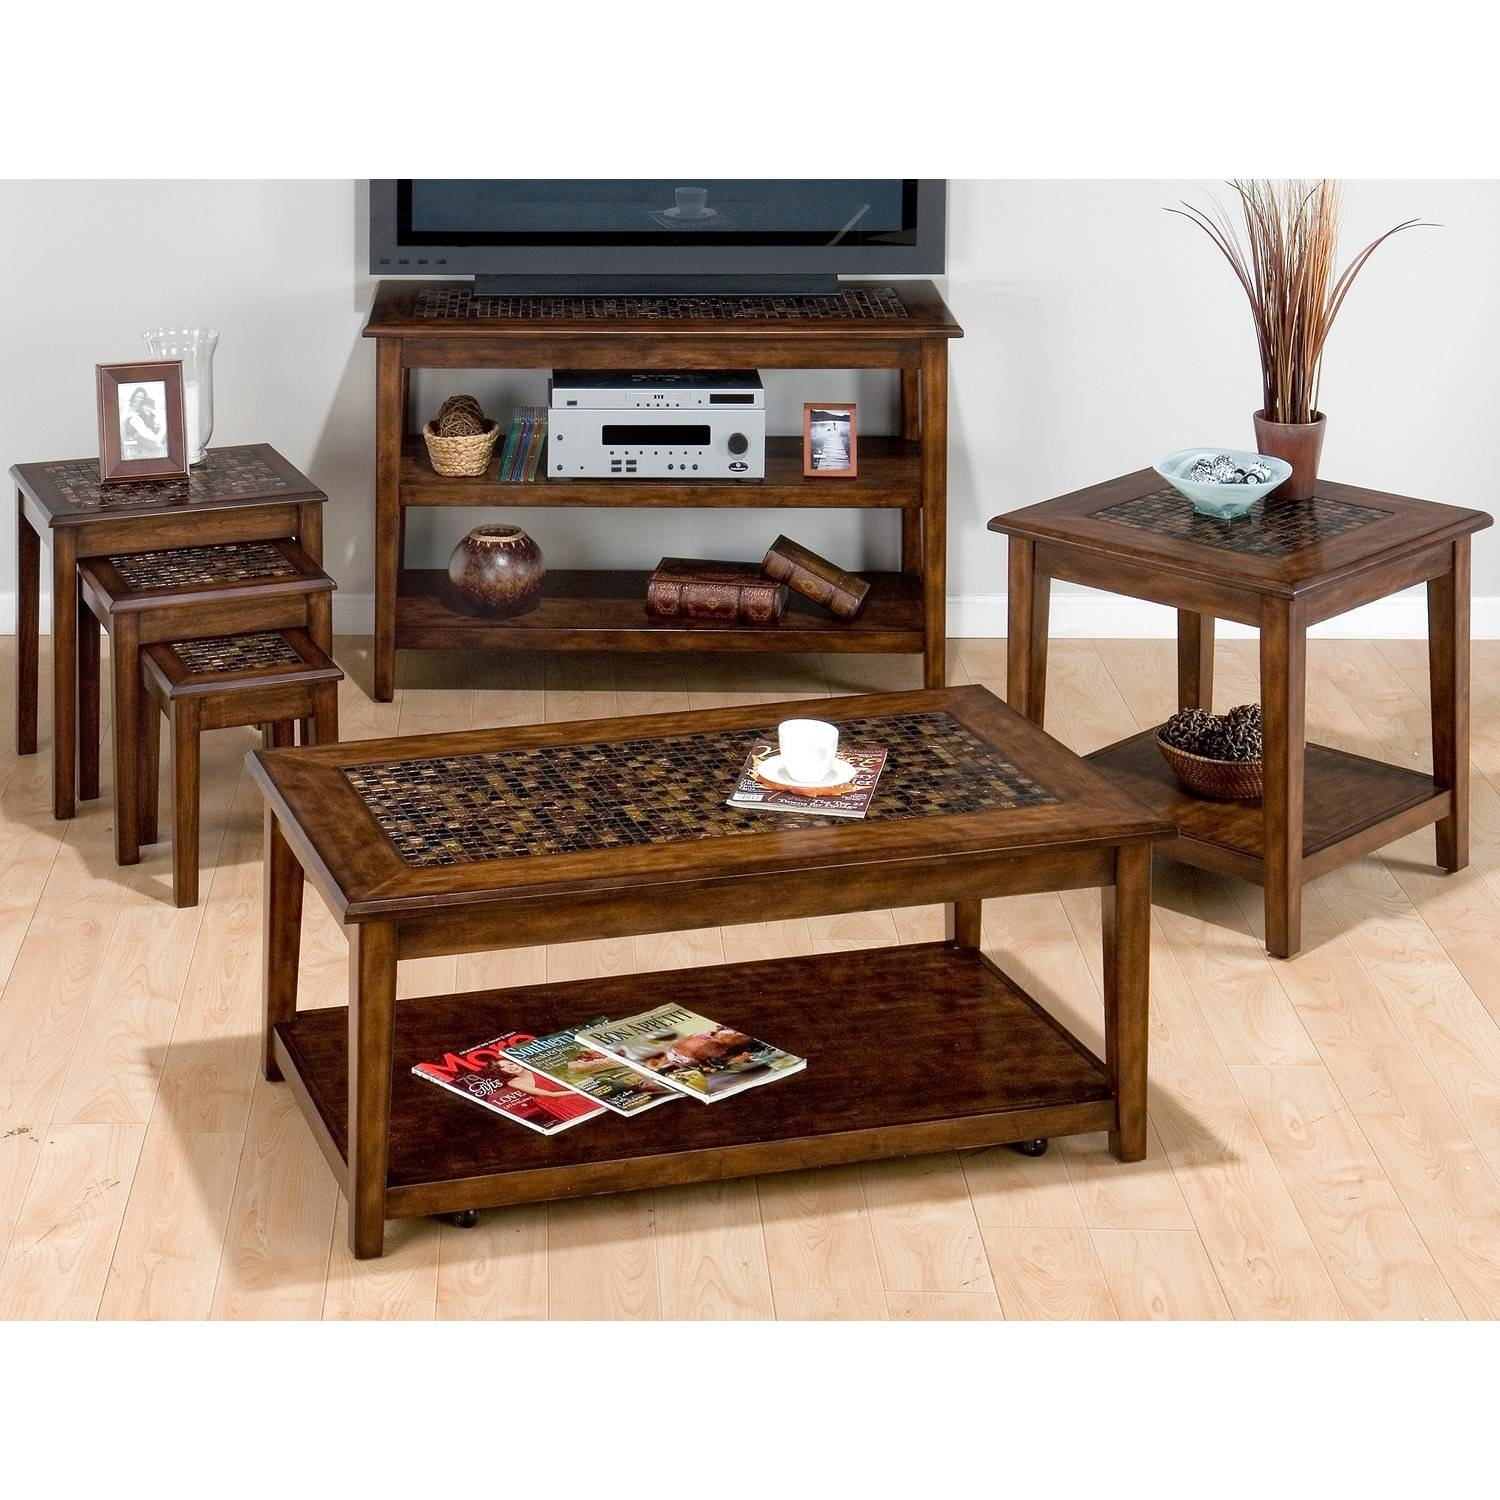 Best 30 of Tv Stand Coffee Table Sets